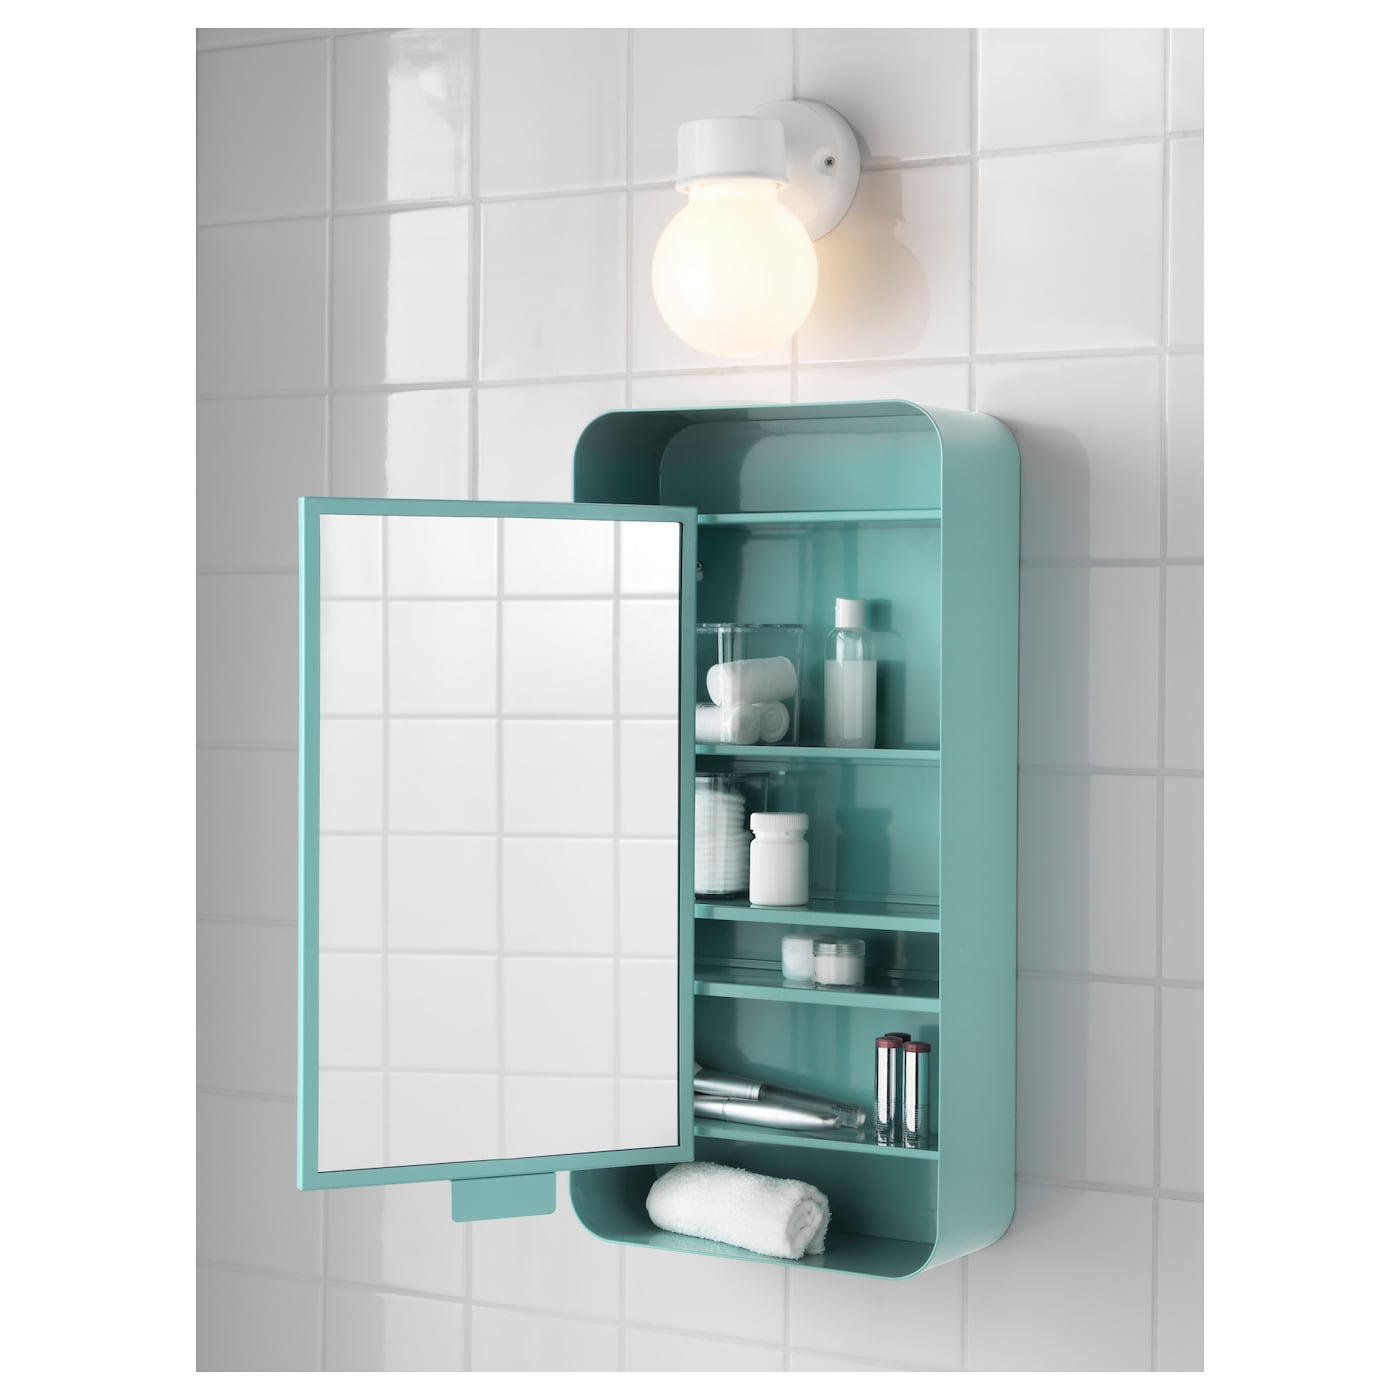 Gunnern mirror cabinet with 1 door turquoise 31x62 cm ikea for Ikea turquoise shelf